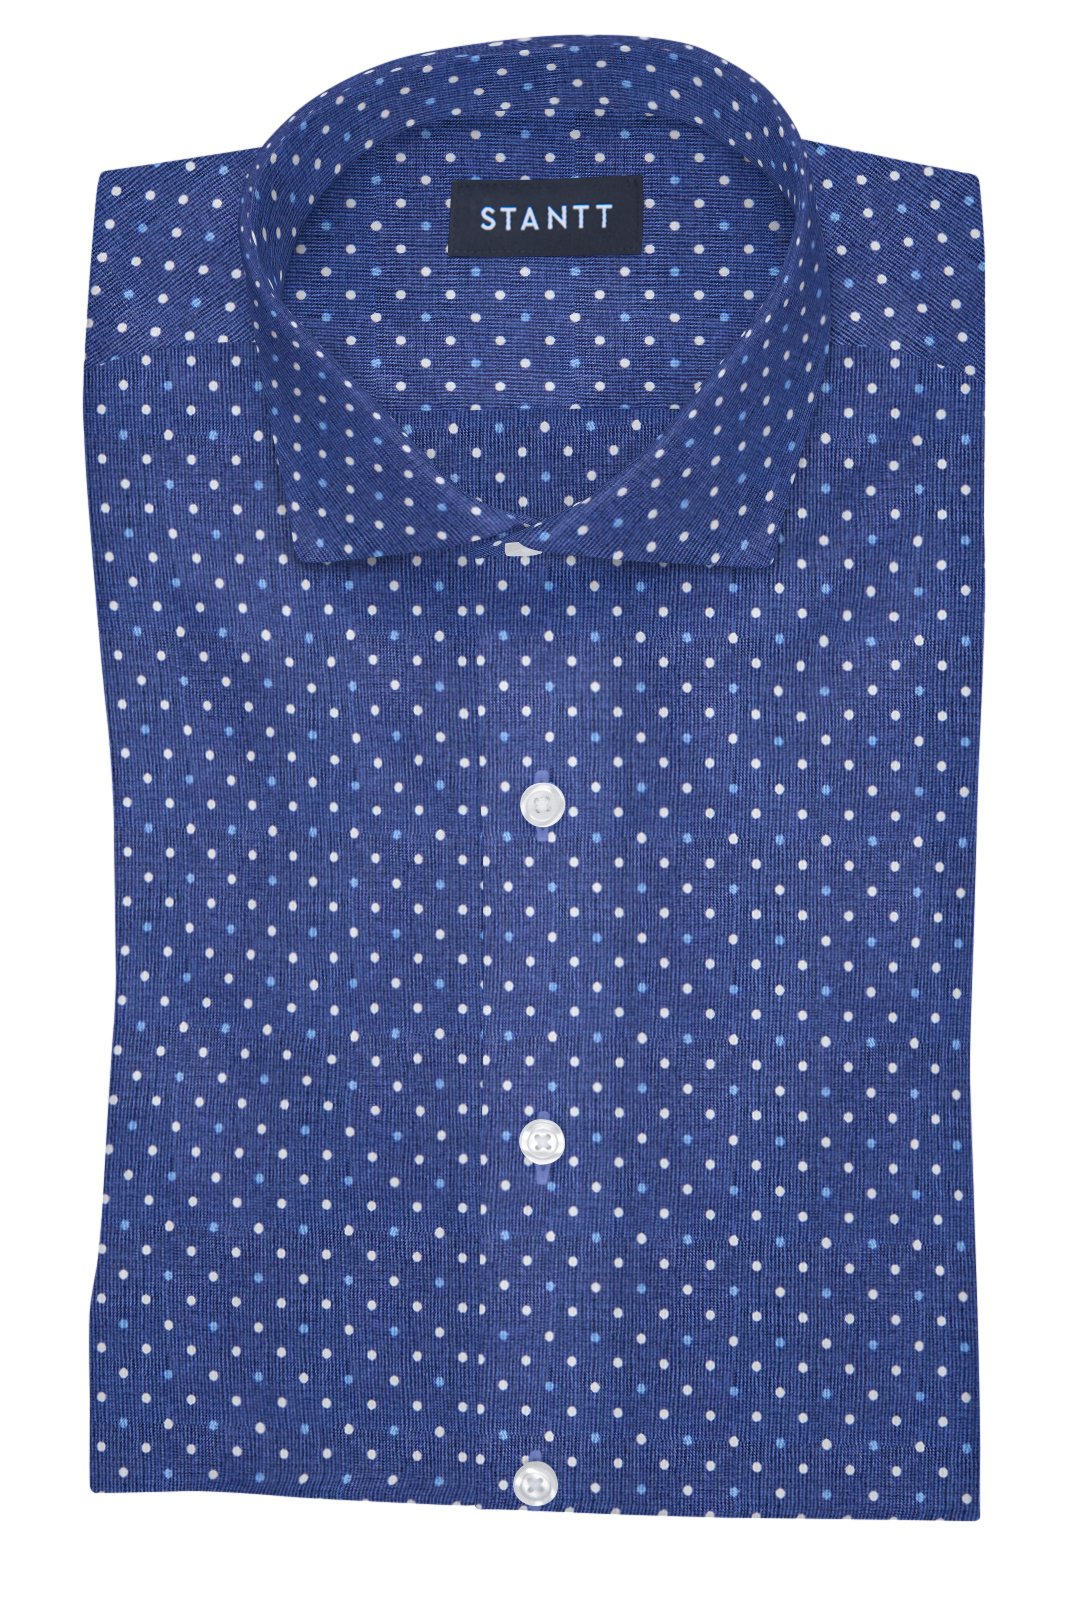 Navy and White Contemporary Dots: Cutaway Collar, French Cuff